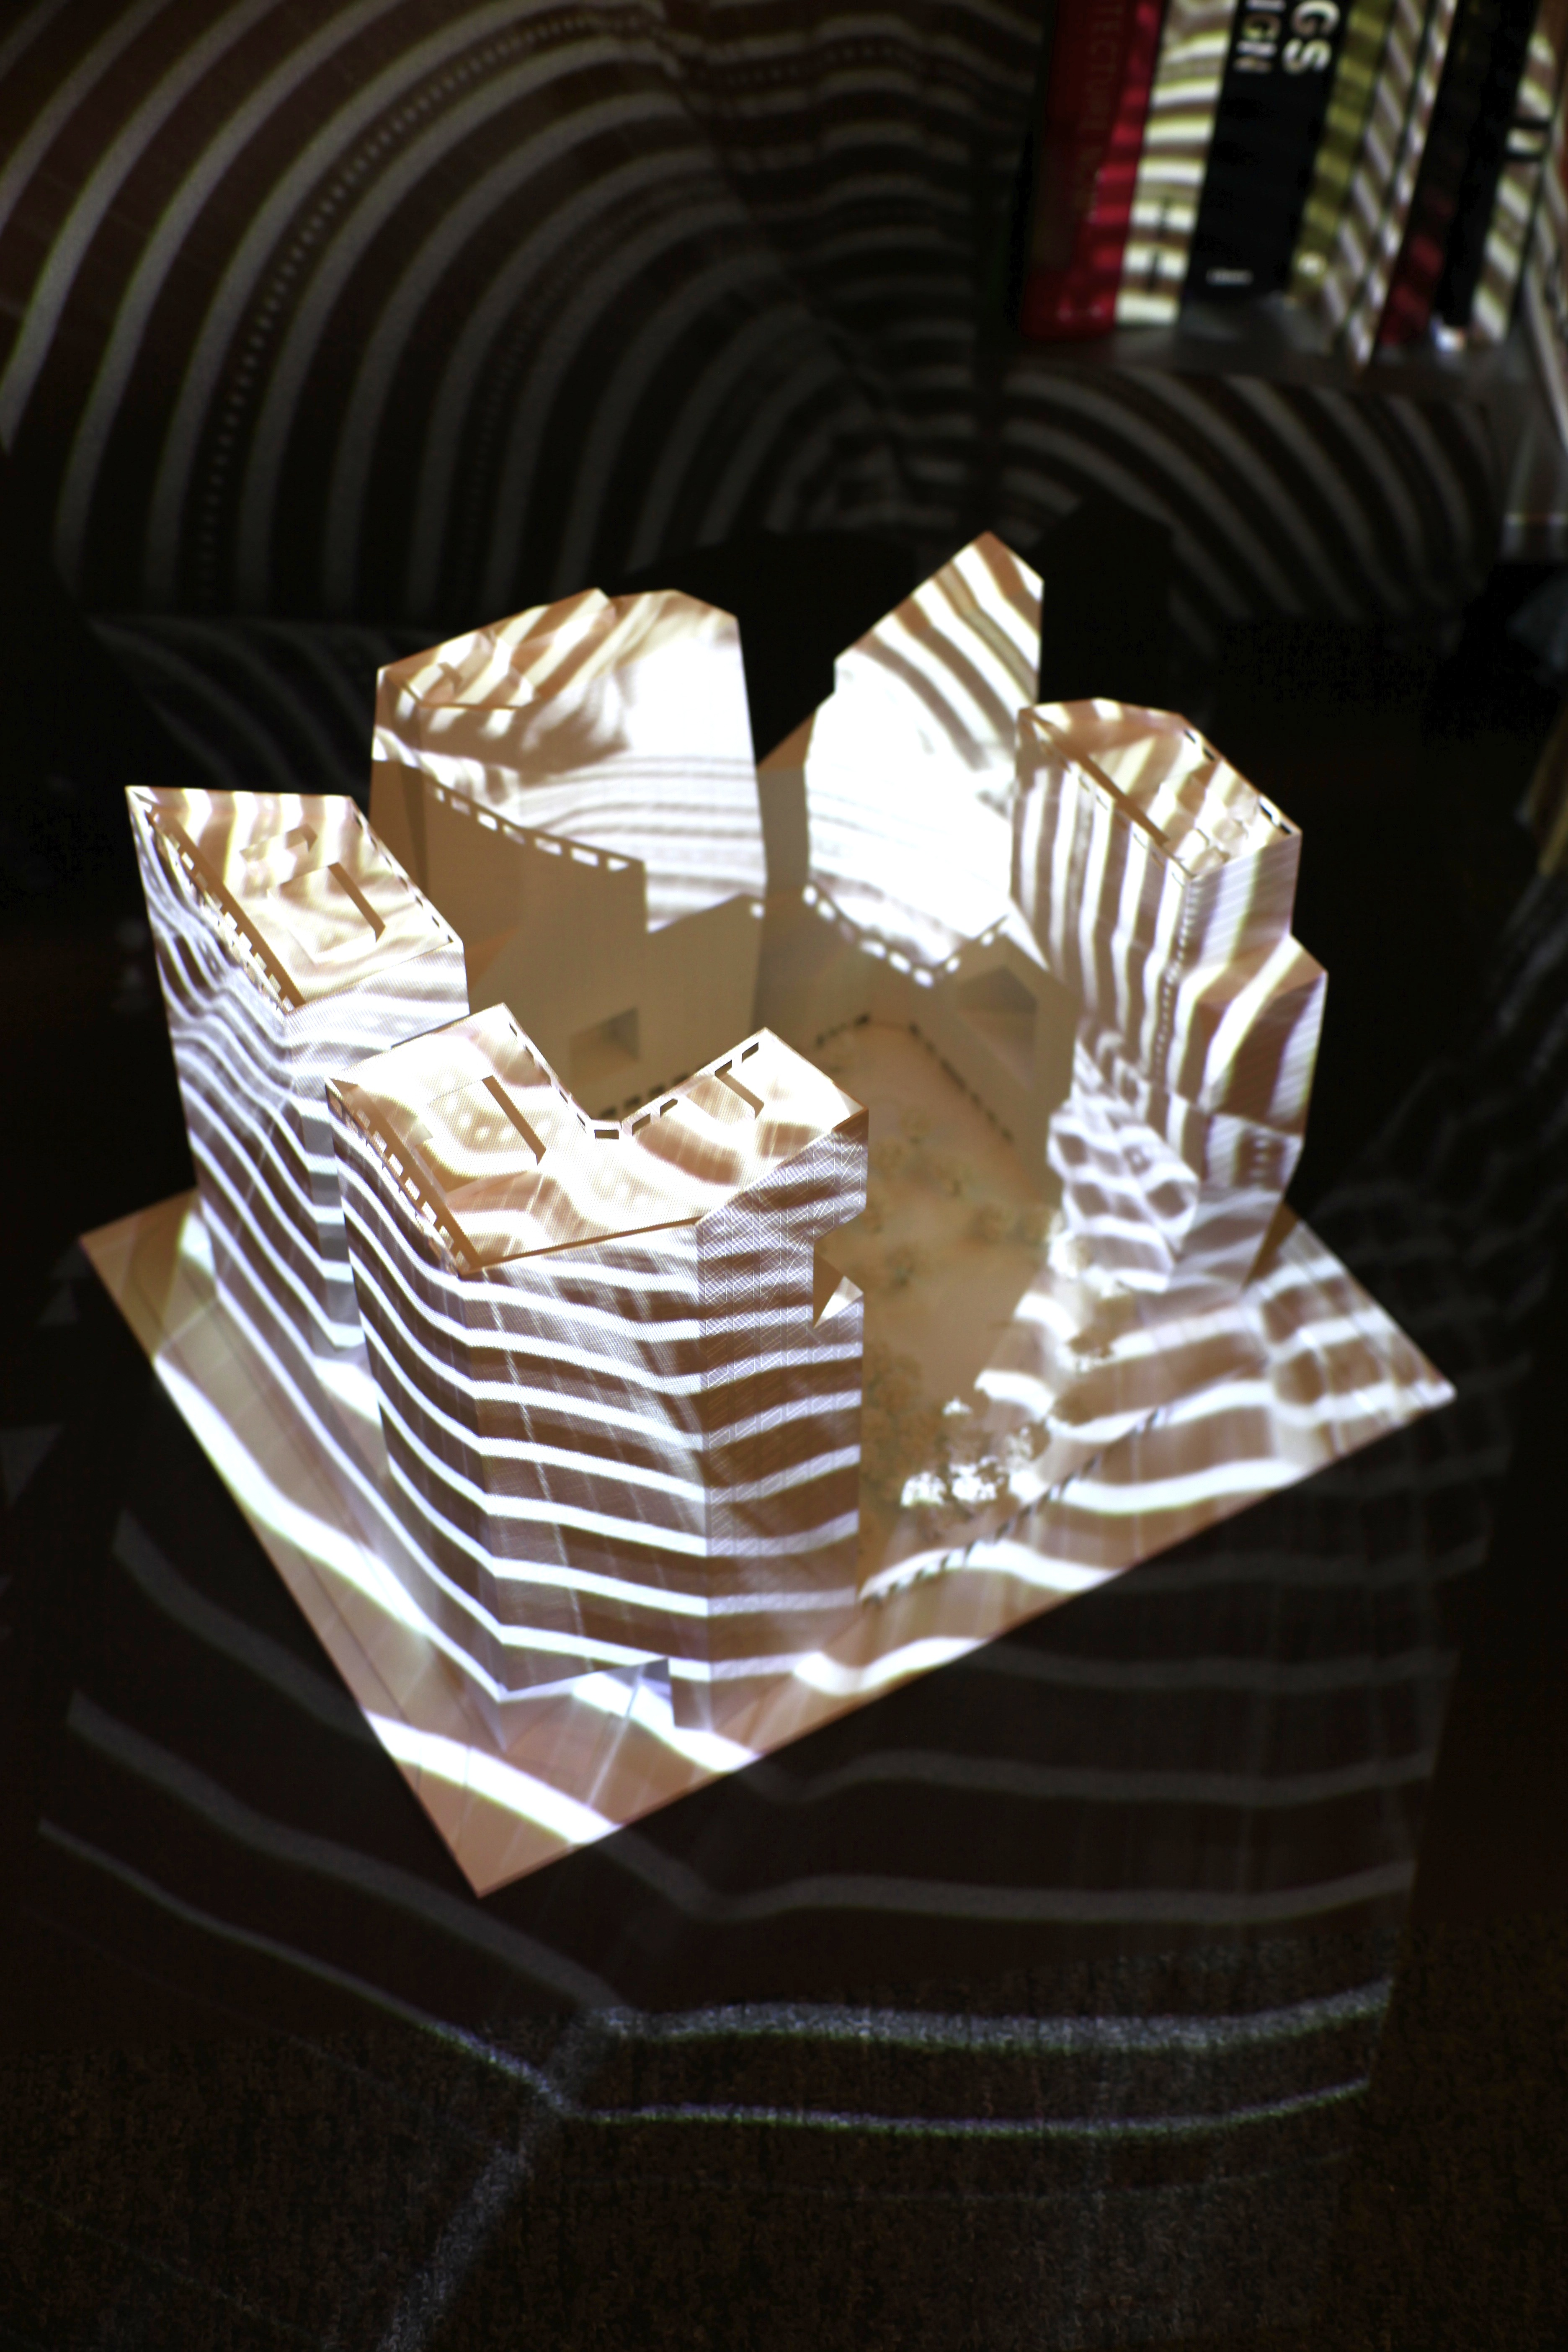 Model Making and Projection Testing